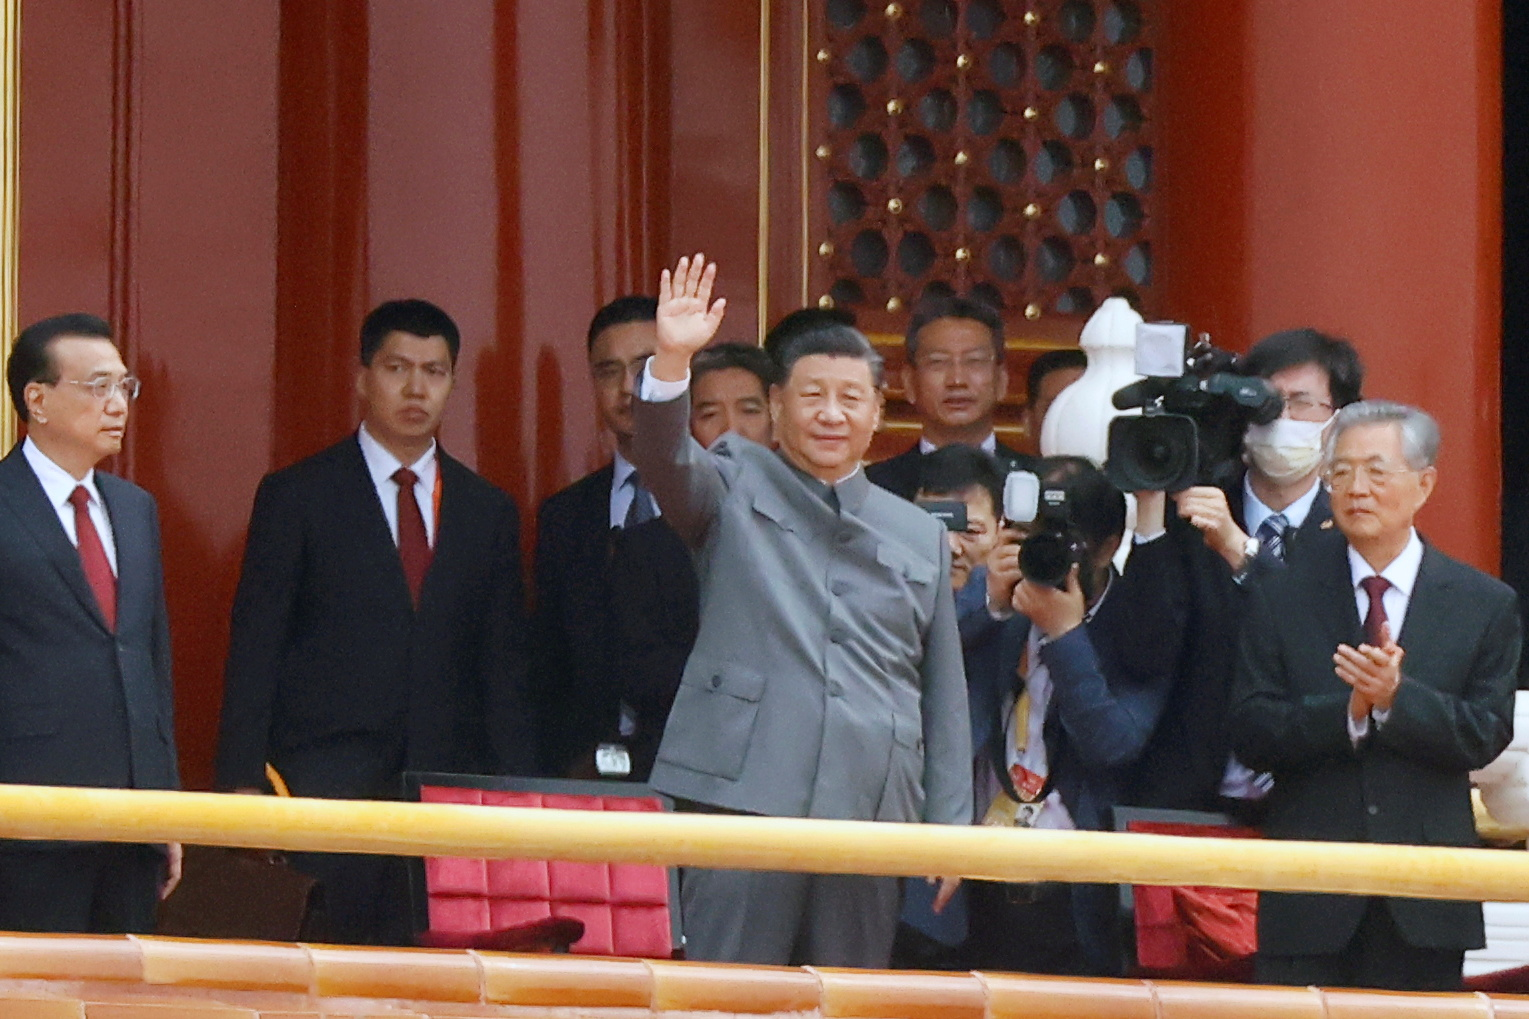 """Xi Jinping Pledges """"Reunification"""" With Taiwan During CCP's 100th Anniversary Speech"""